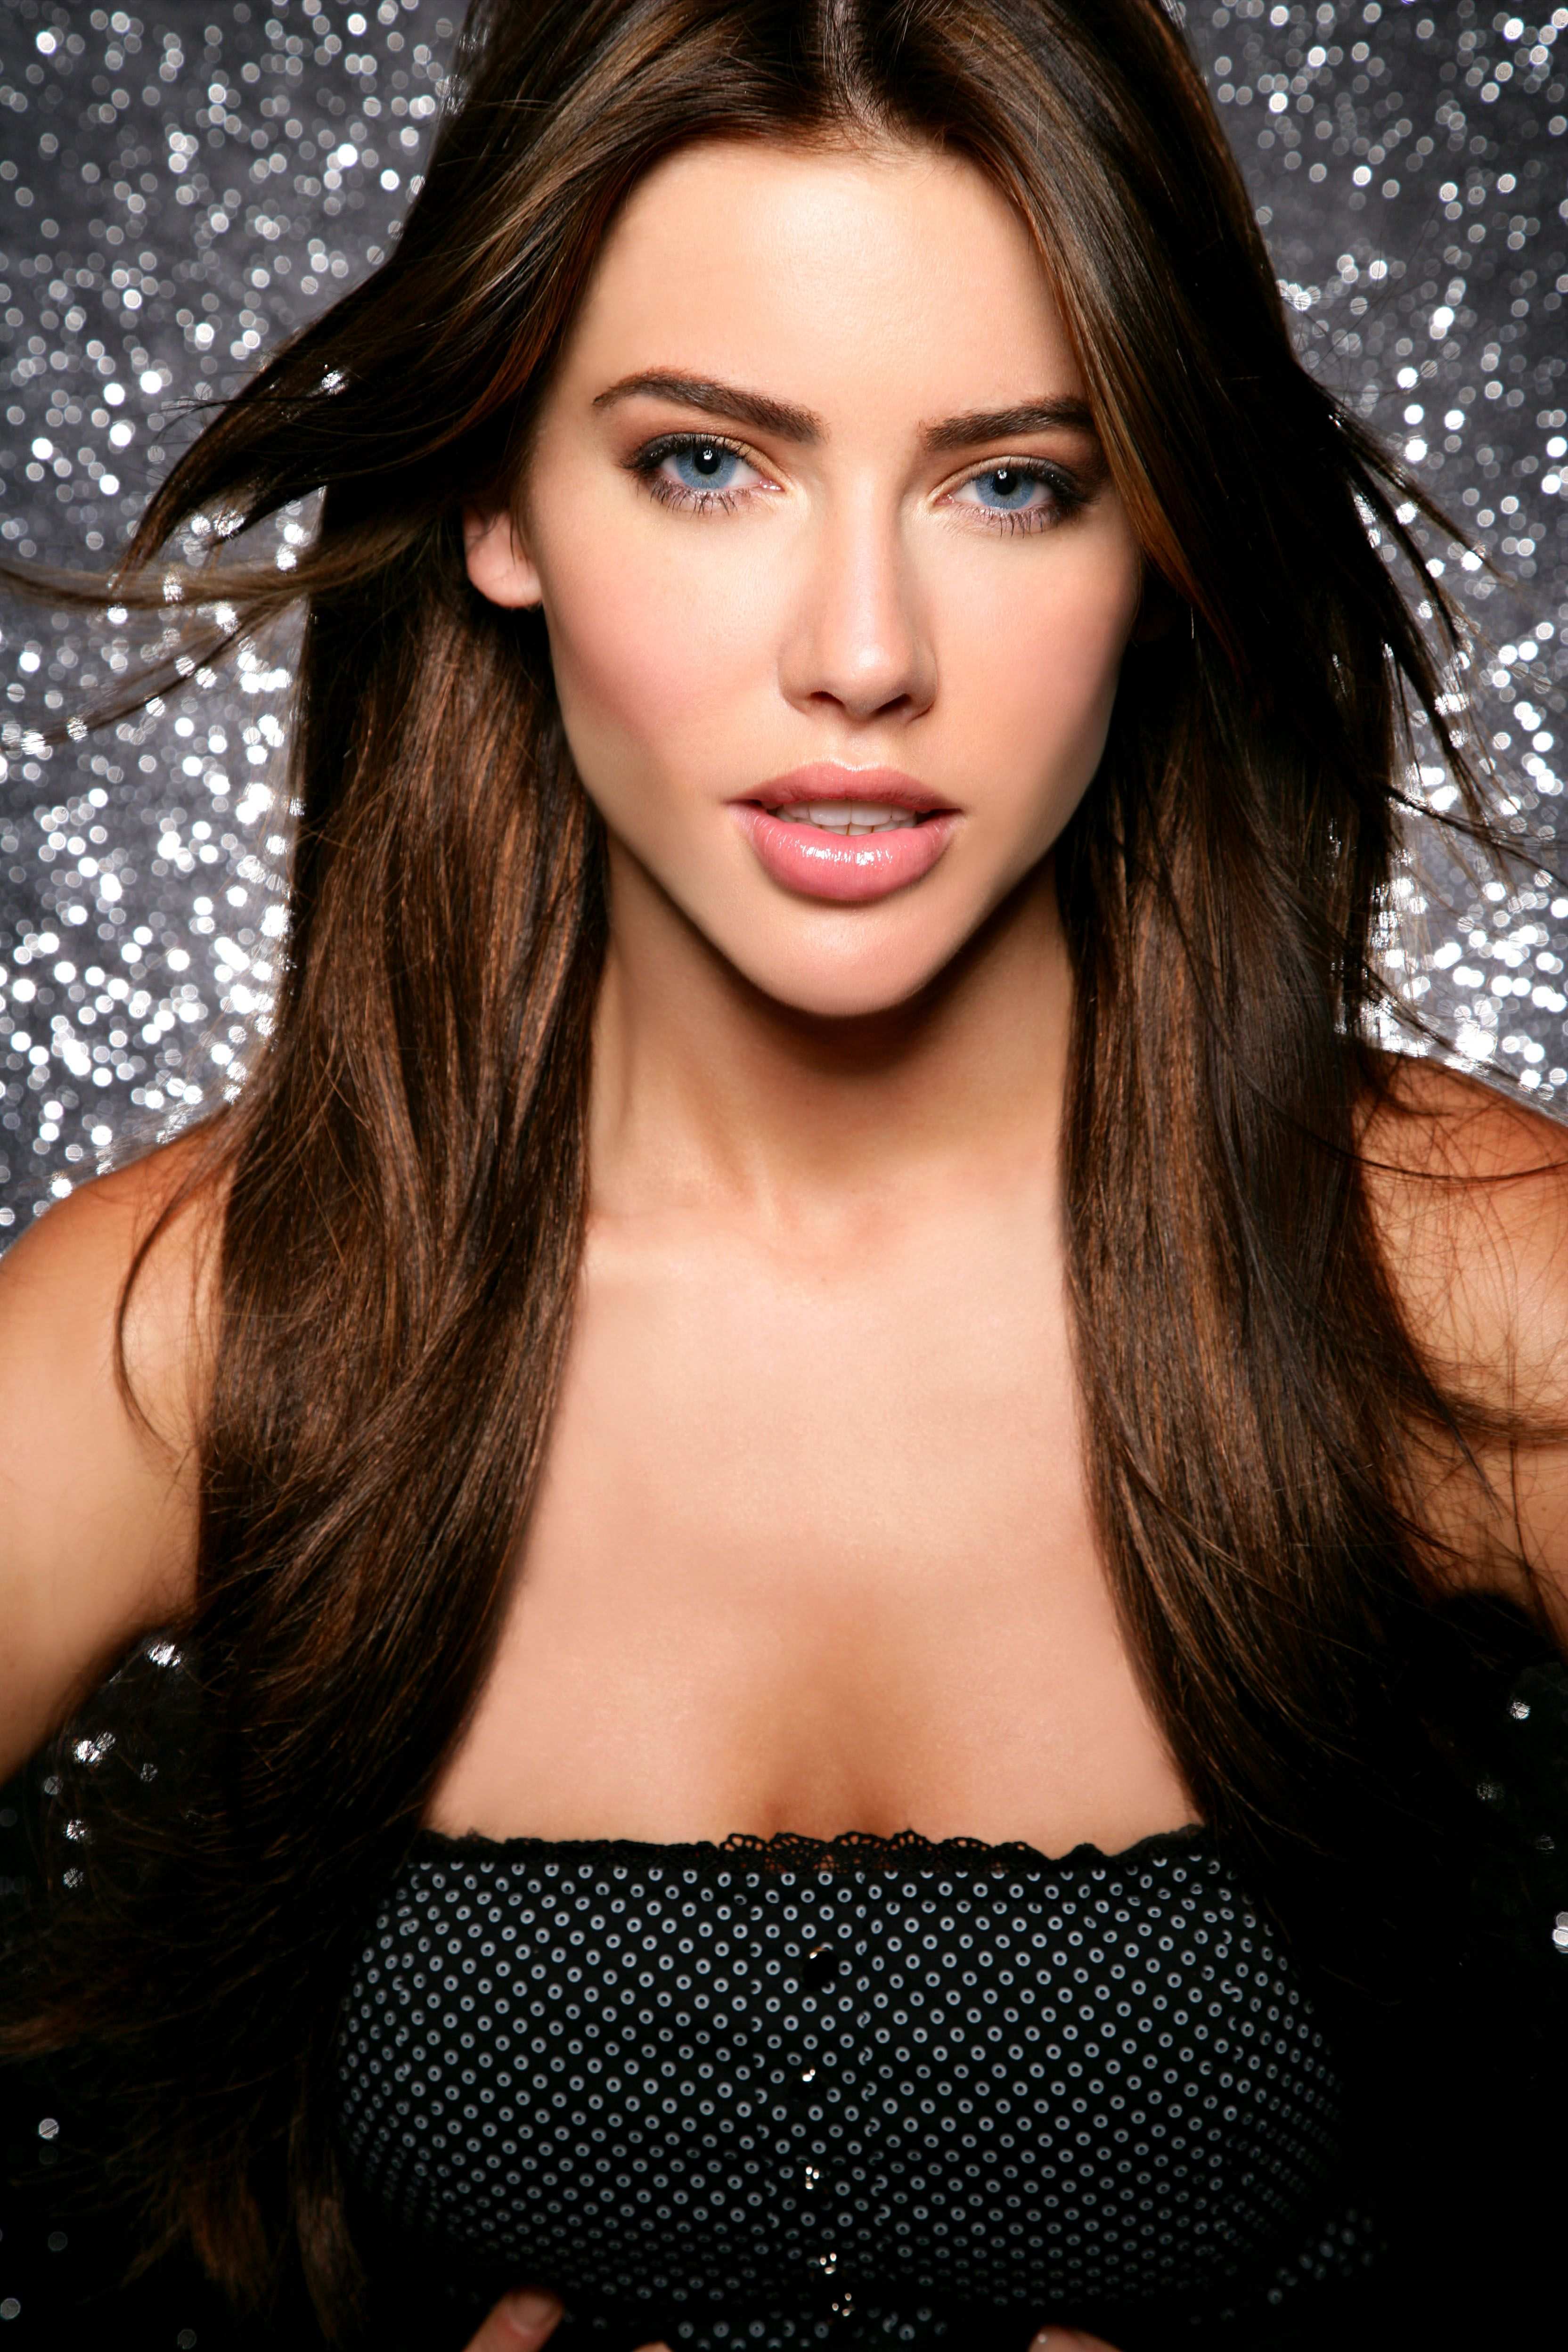 Cleavage Jacqueline MacInnes Wood nude (83 photo), Topless, Hot, Boobs, braless 2015